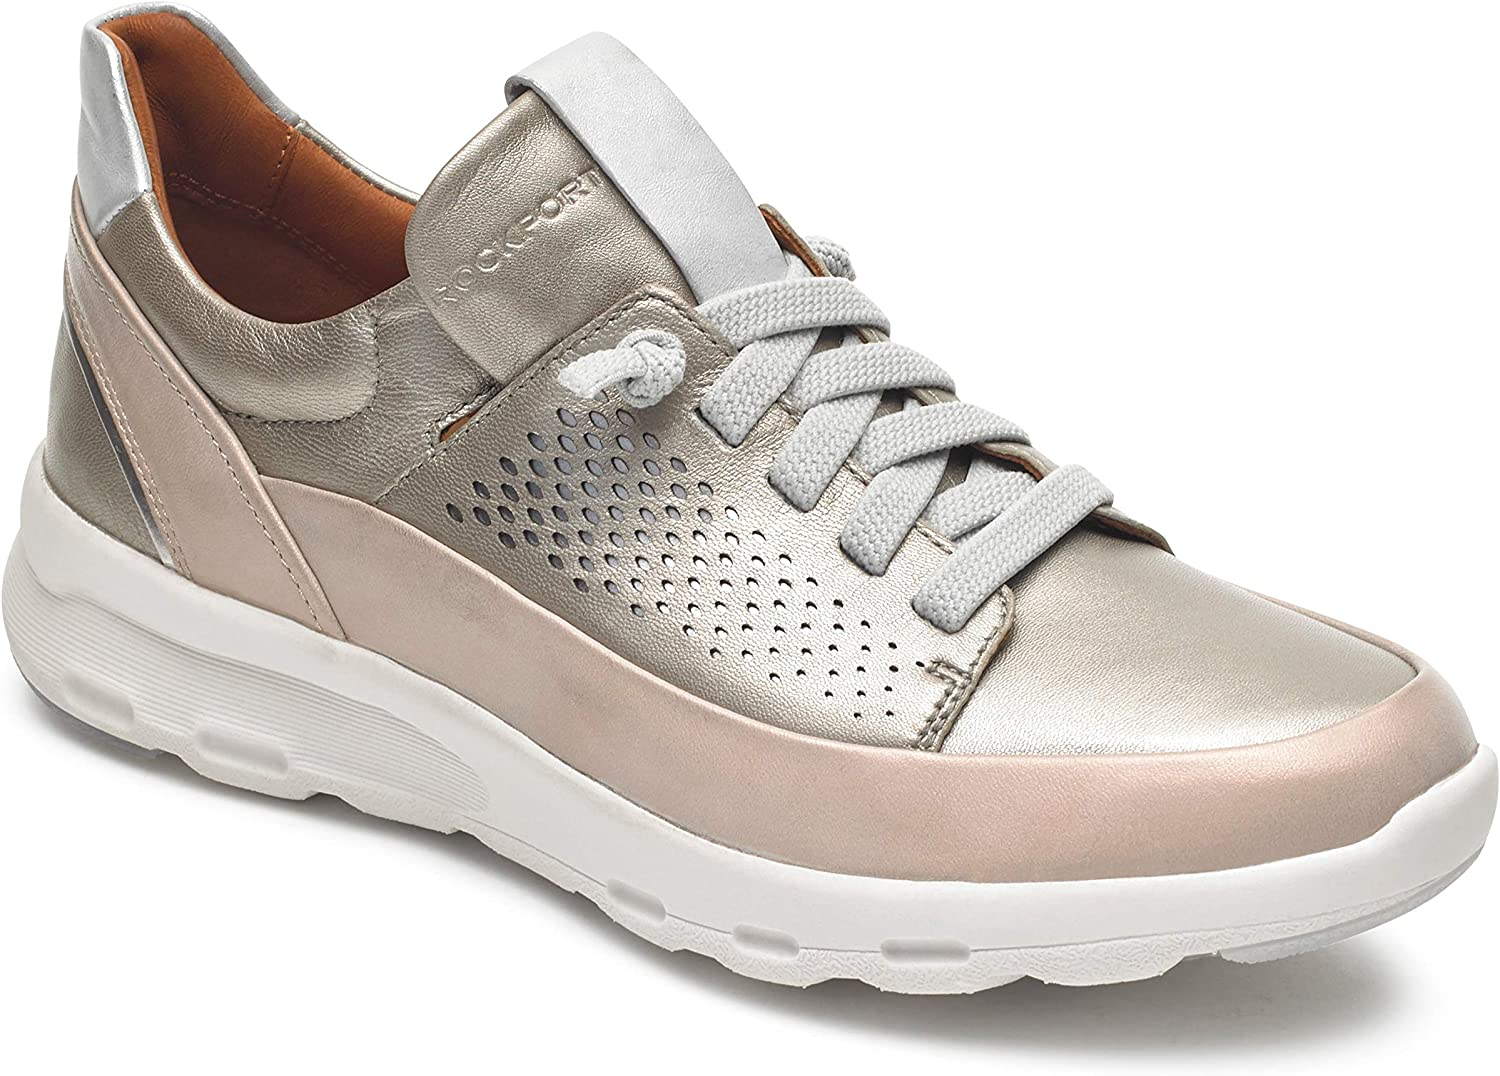 Rockport Let's Walk Womens CH4690